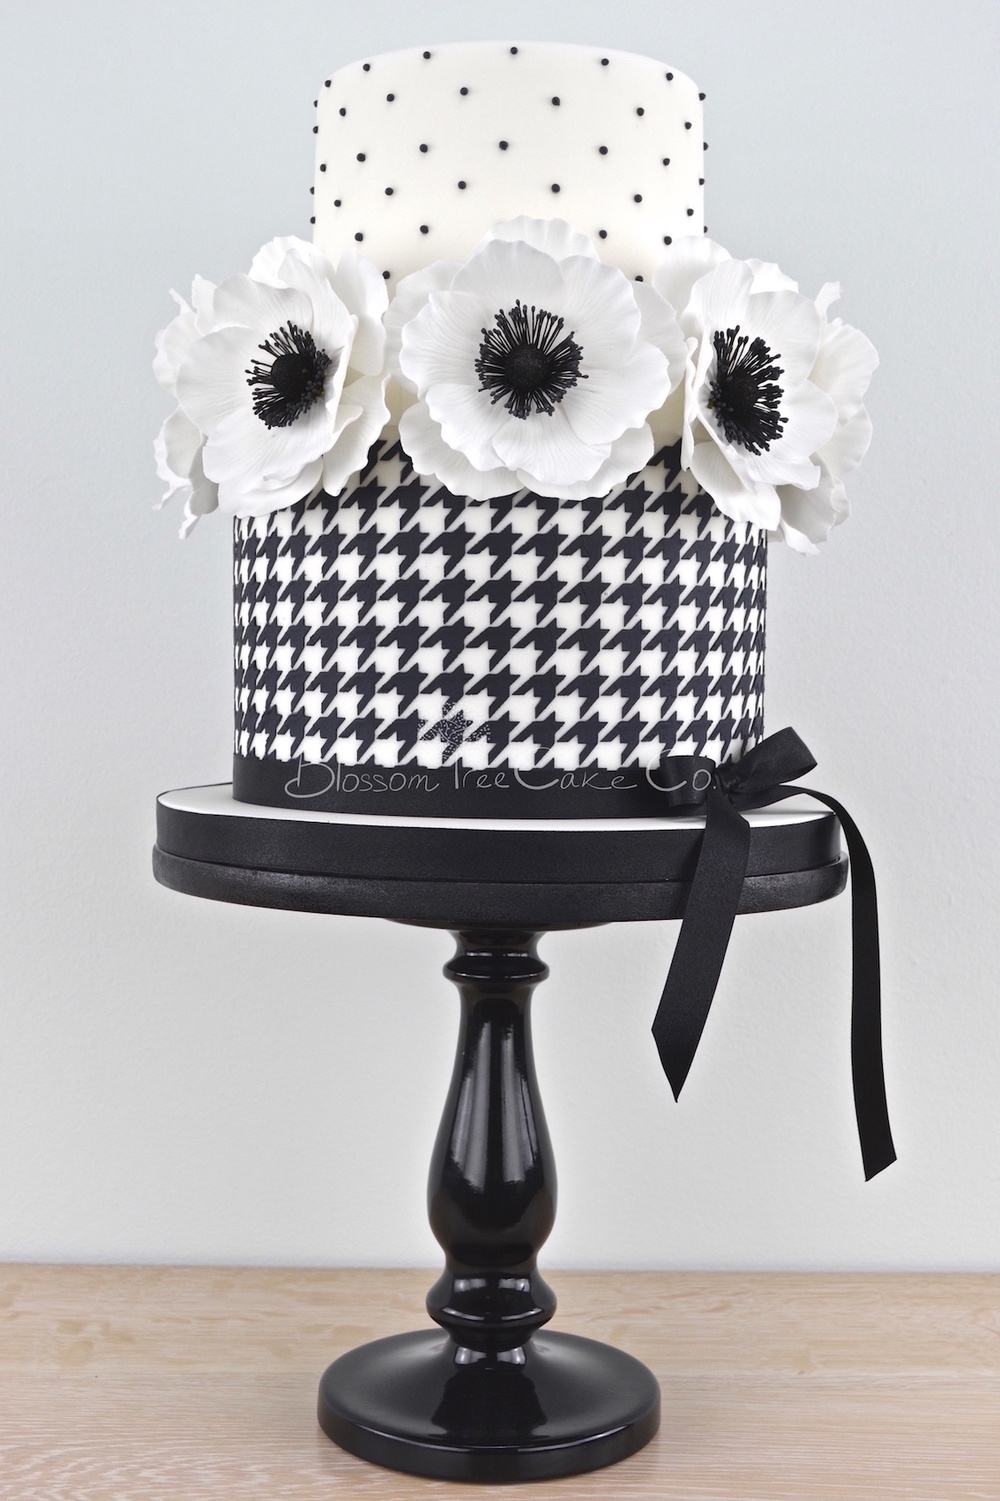 Black and White Houndstooth with Anemones.jpg